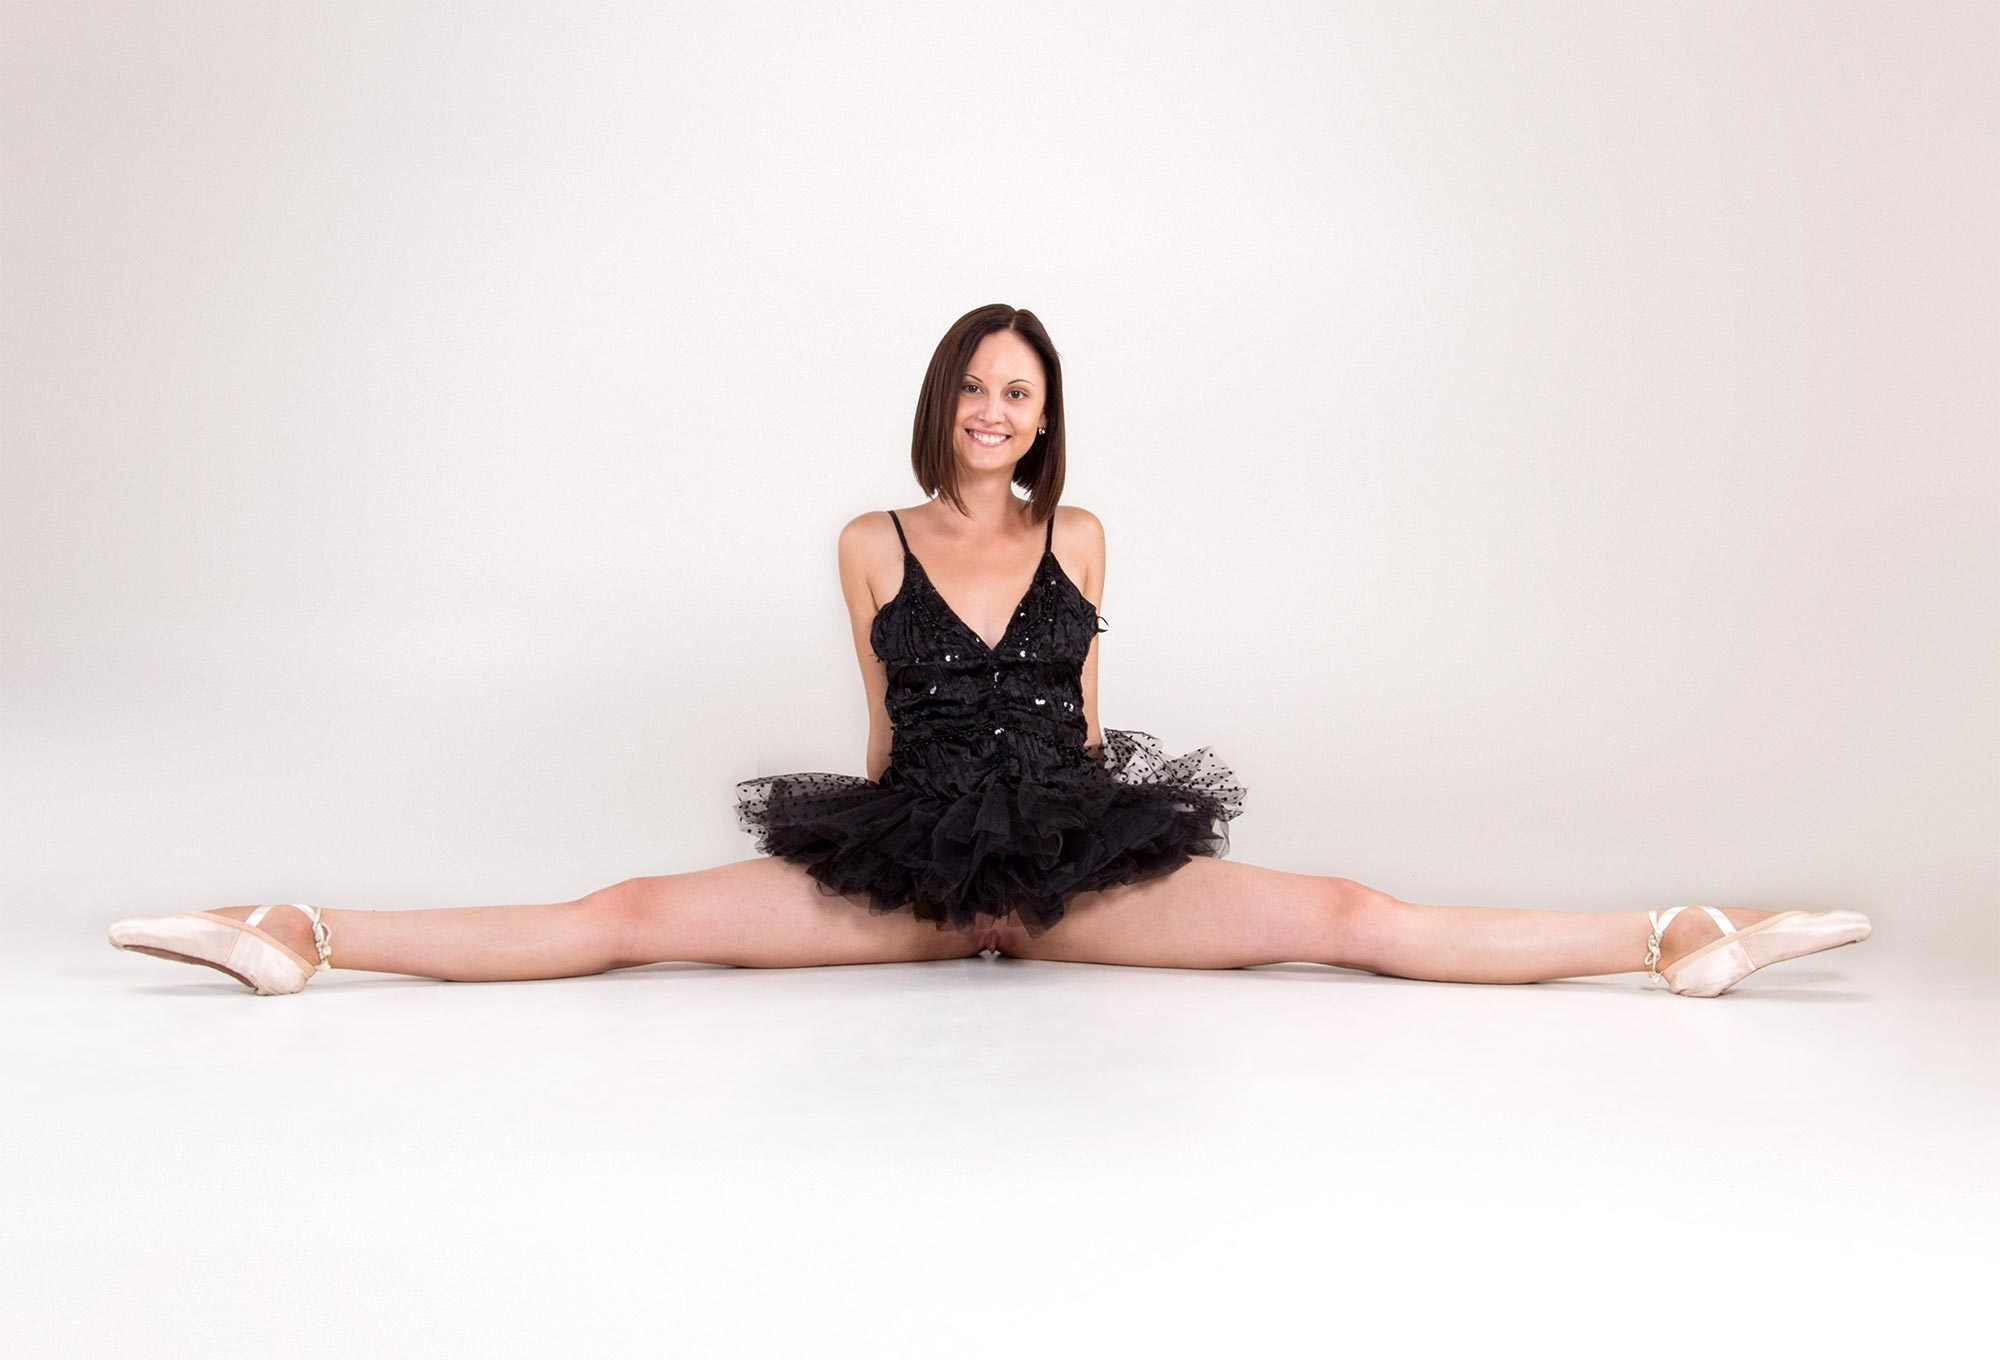 Nude ballet: naked ballet photos and videos with flexible ballerinas